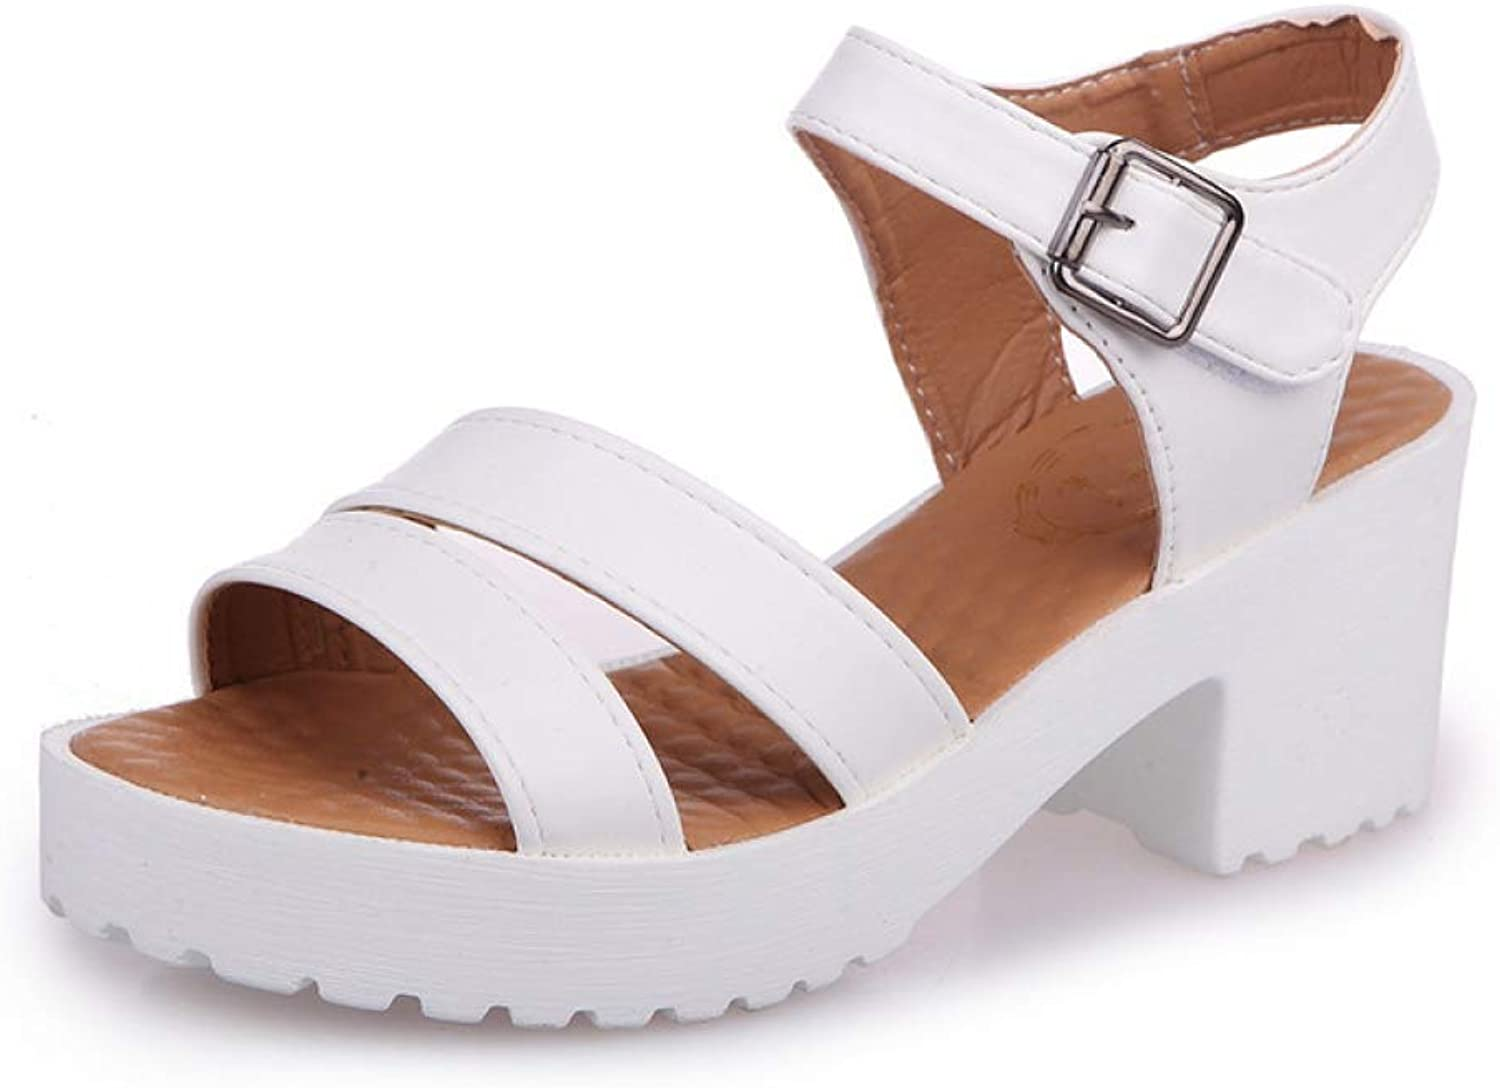 T-JULY Platform Sandal for Women Summer Open Toe Chunky Heel Wedges Fashion Comfortable Casual Ladies shoes